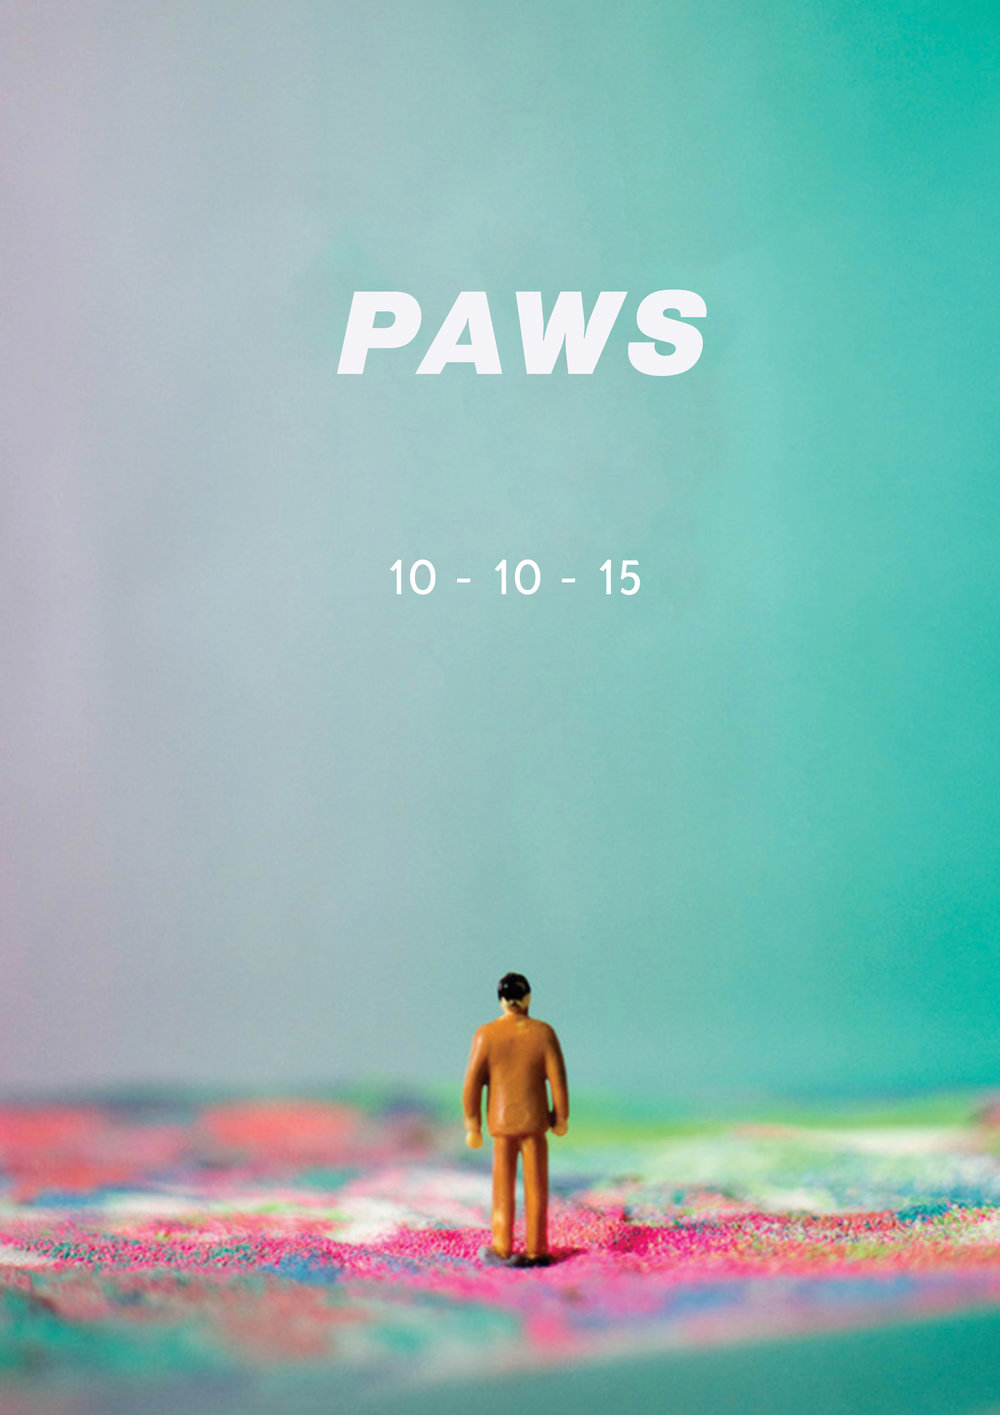 Paws-Poster-Redesigned6_RGB.jpg